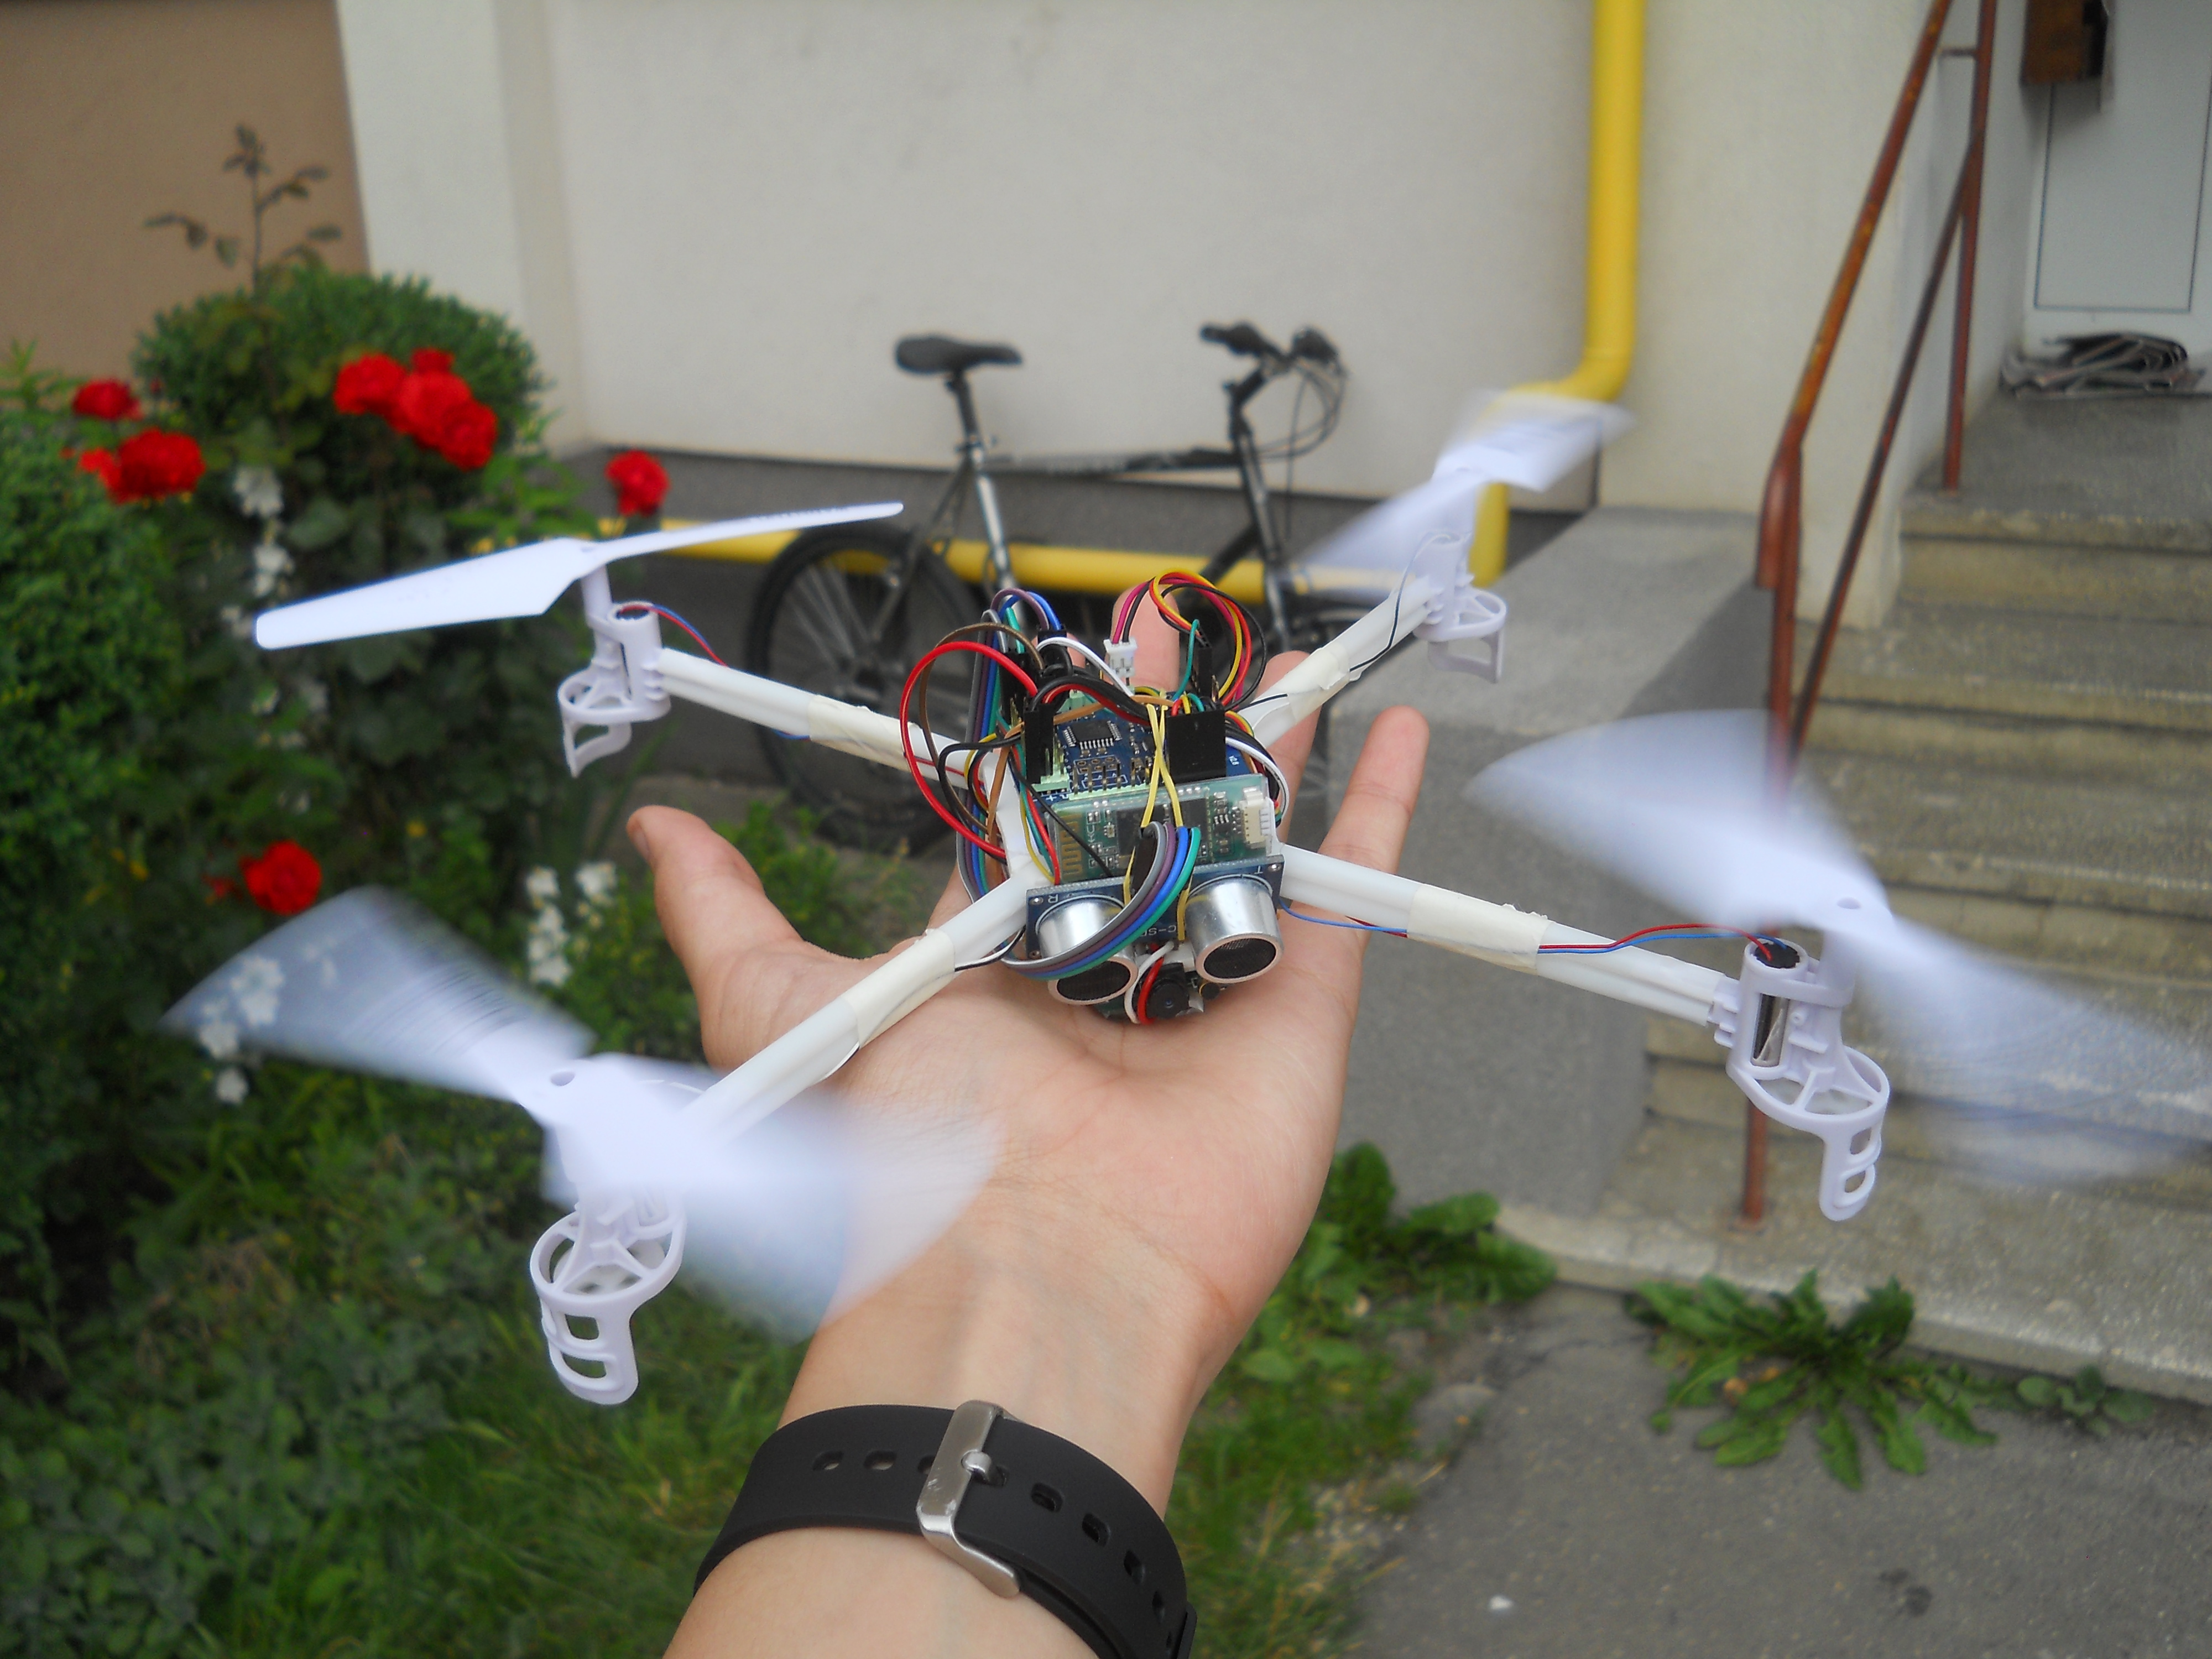 Picture of DIY Smart Follow Me Drone With Camera (Arduino Based)